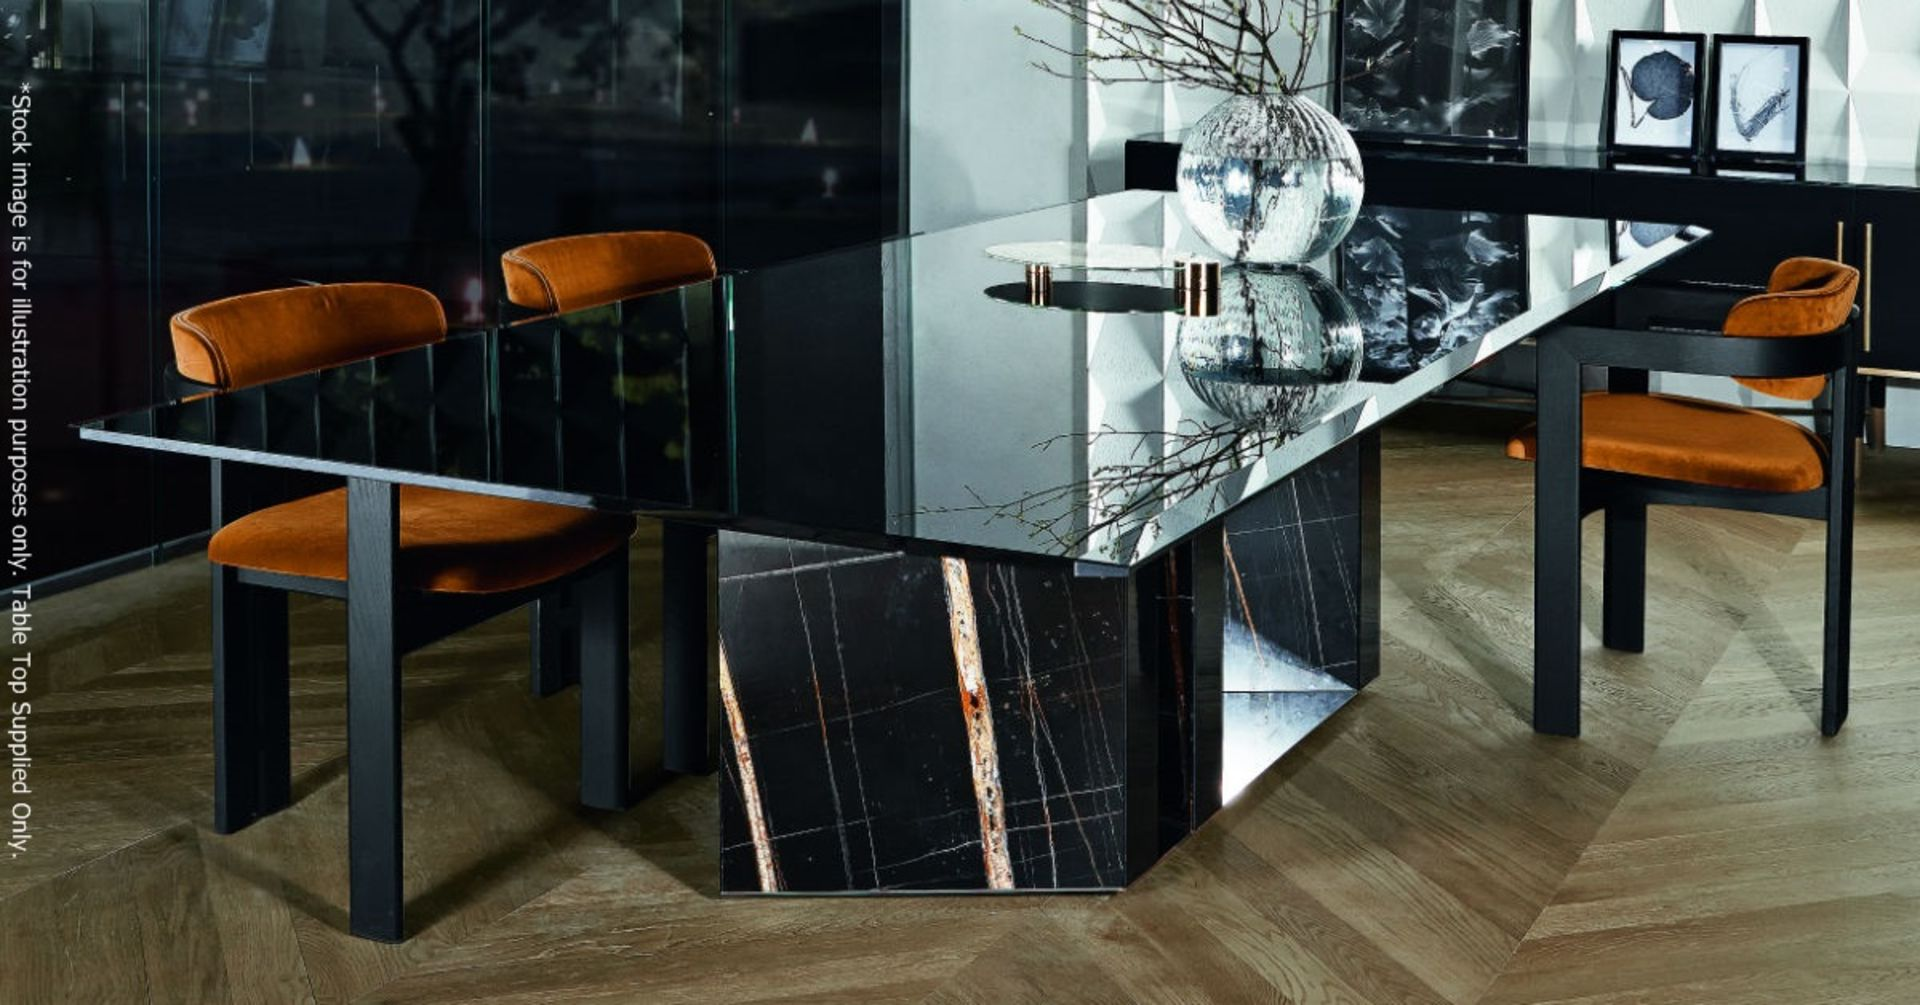 1 x GALLOTTI & RADICE 'Platinum' Italian Made Tinted Glass Table Top *No Base* - Dimensions: To